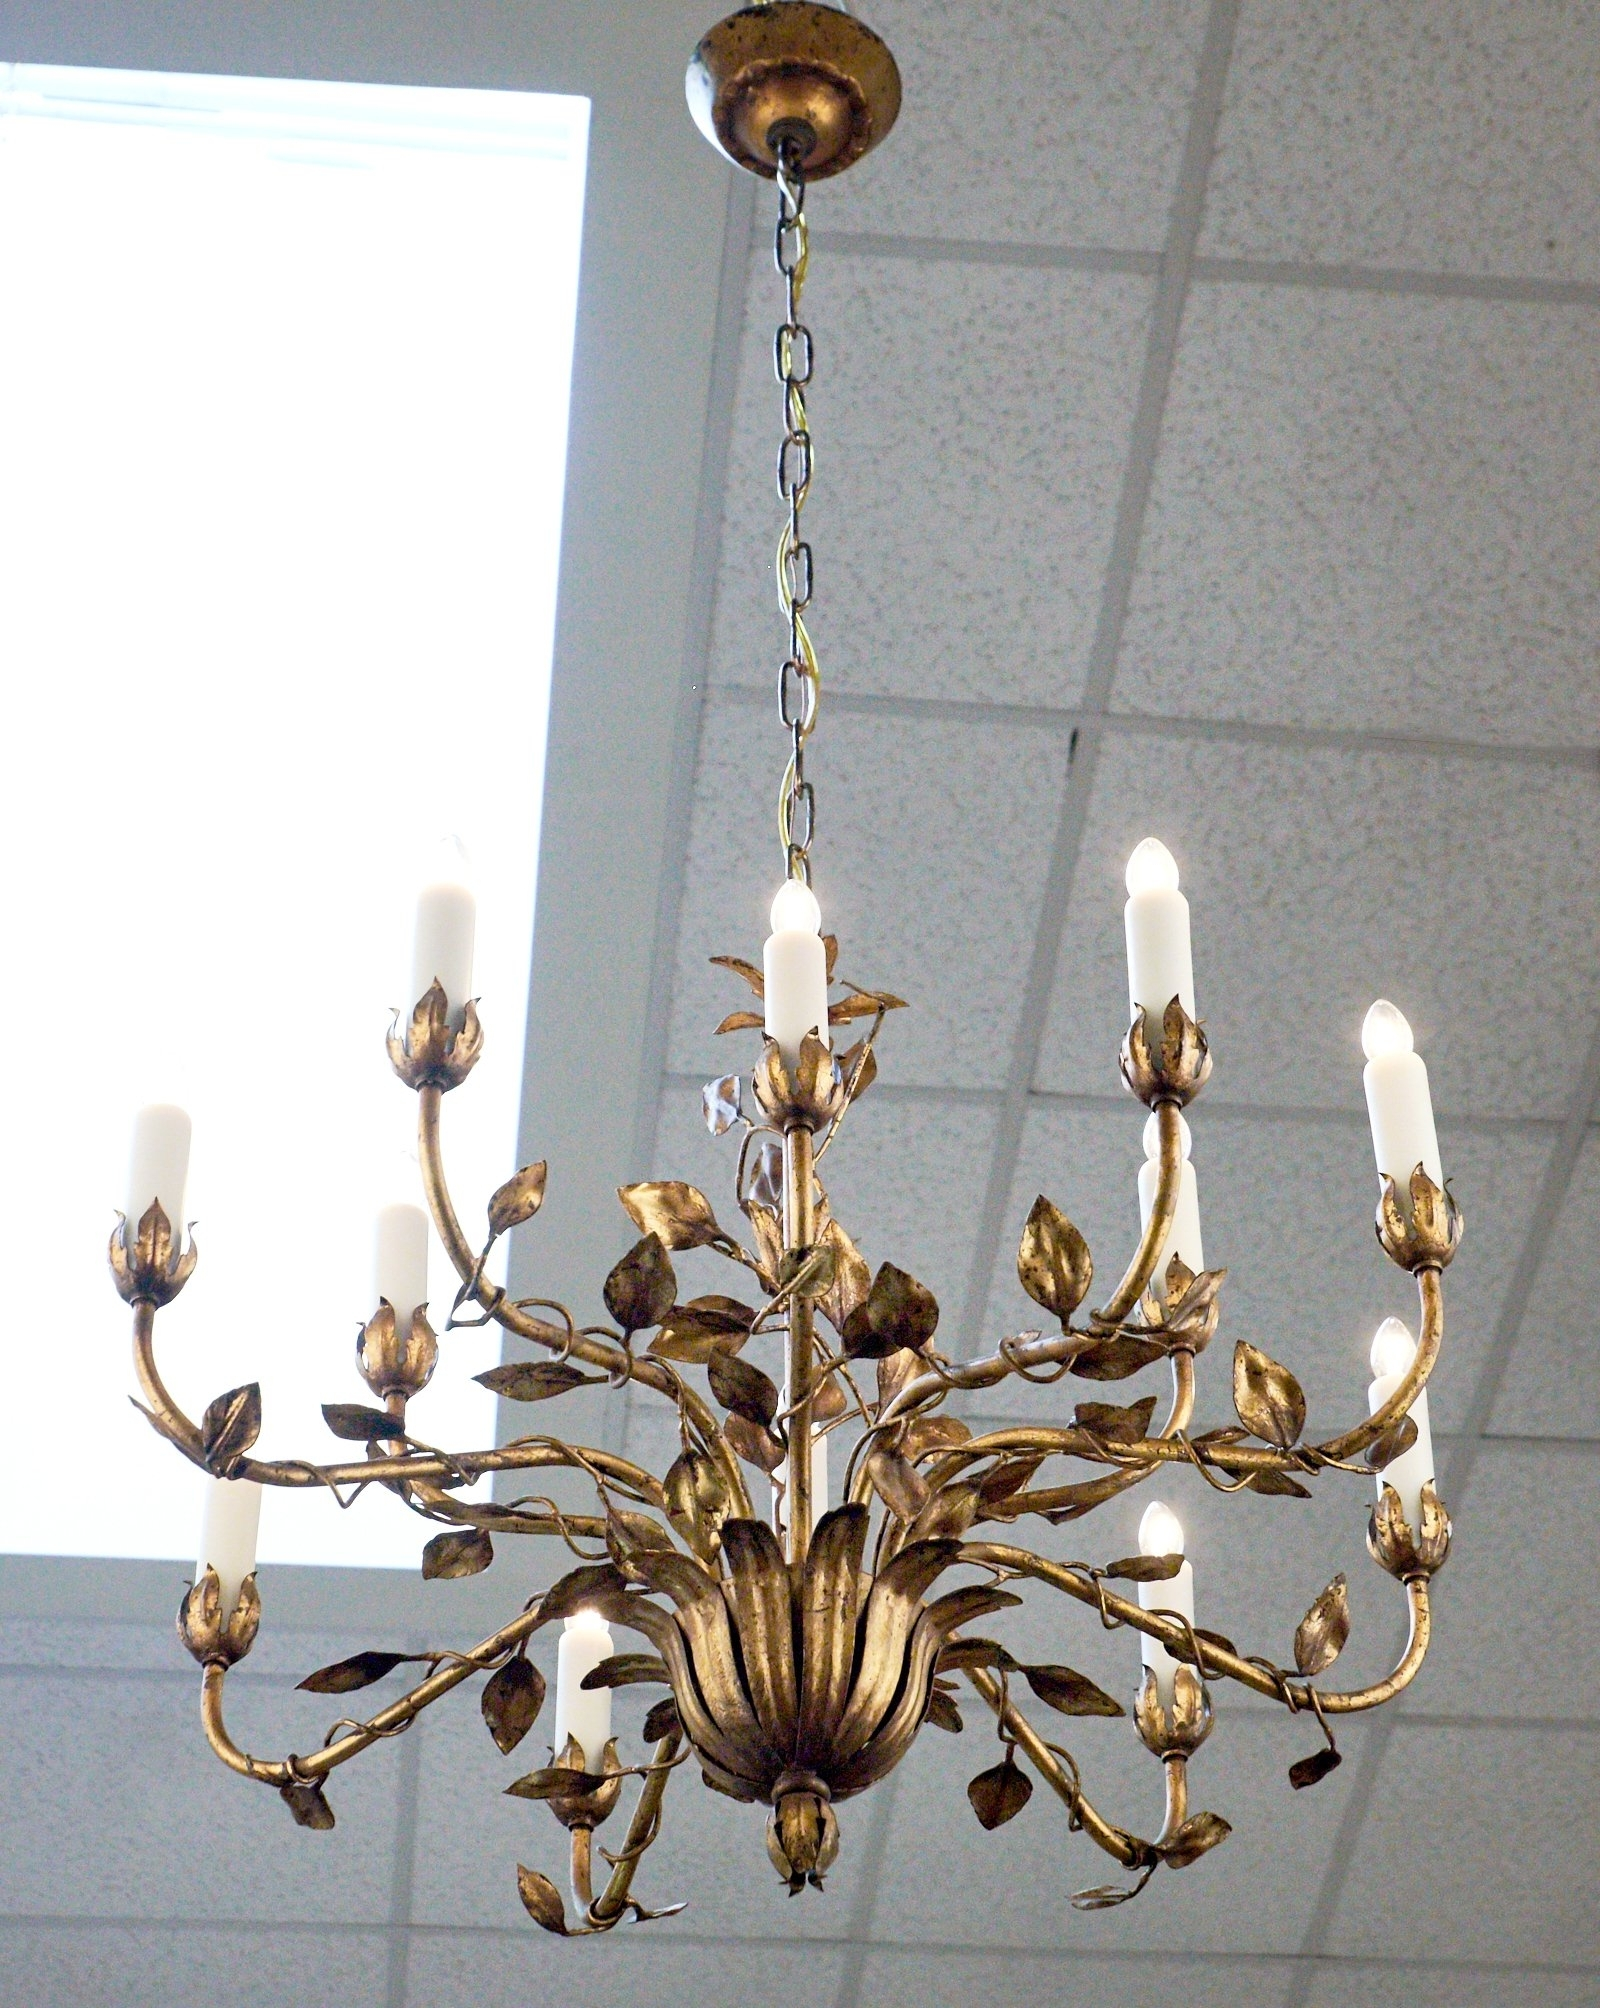 French Gold Leaf Tole Chandelier For Sale At 1Stdibs Throughout Most Current Gold Leaf Chandelier (View 6 of 20)